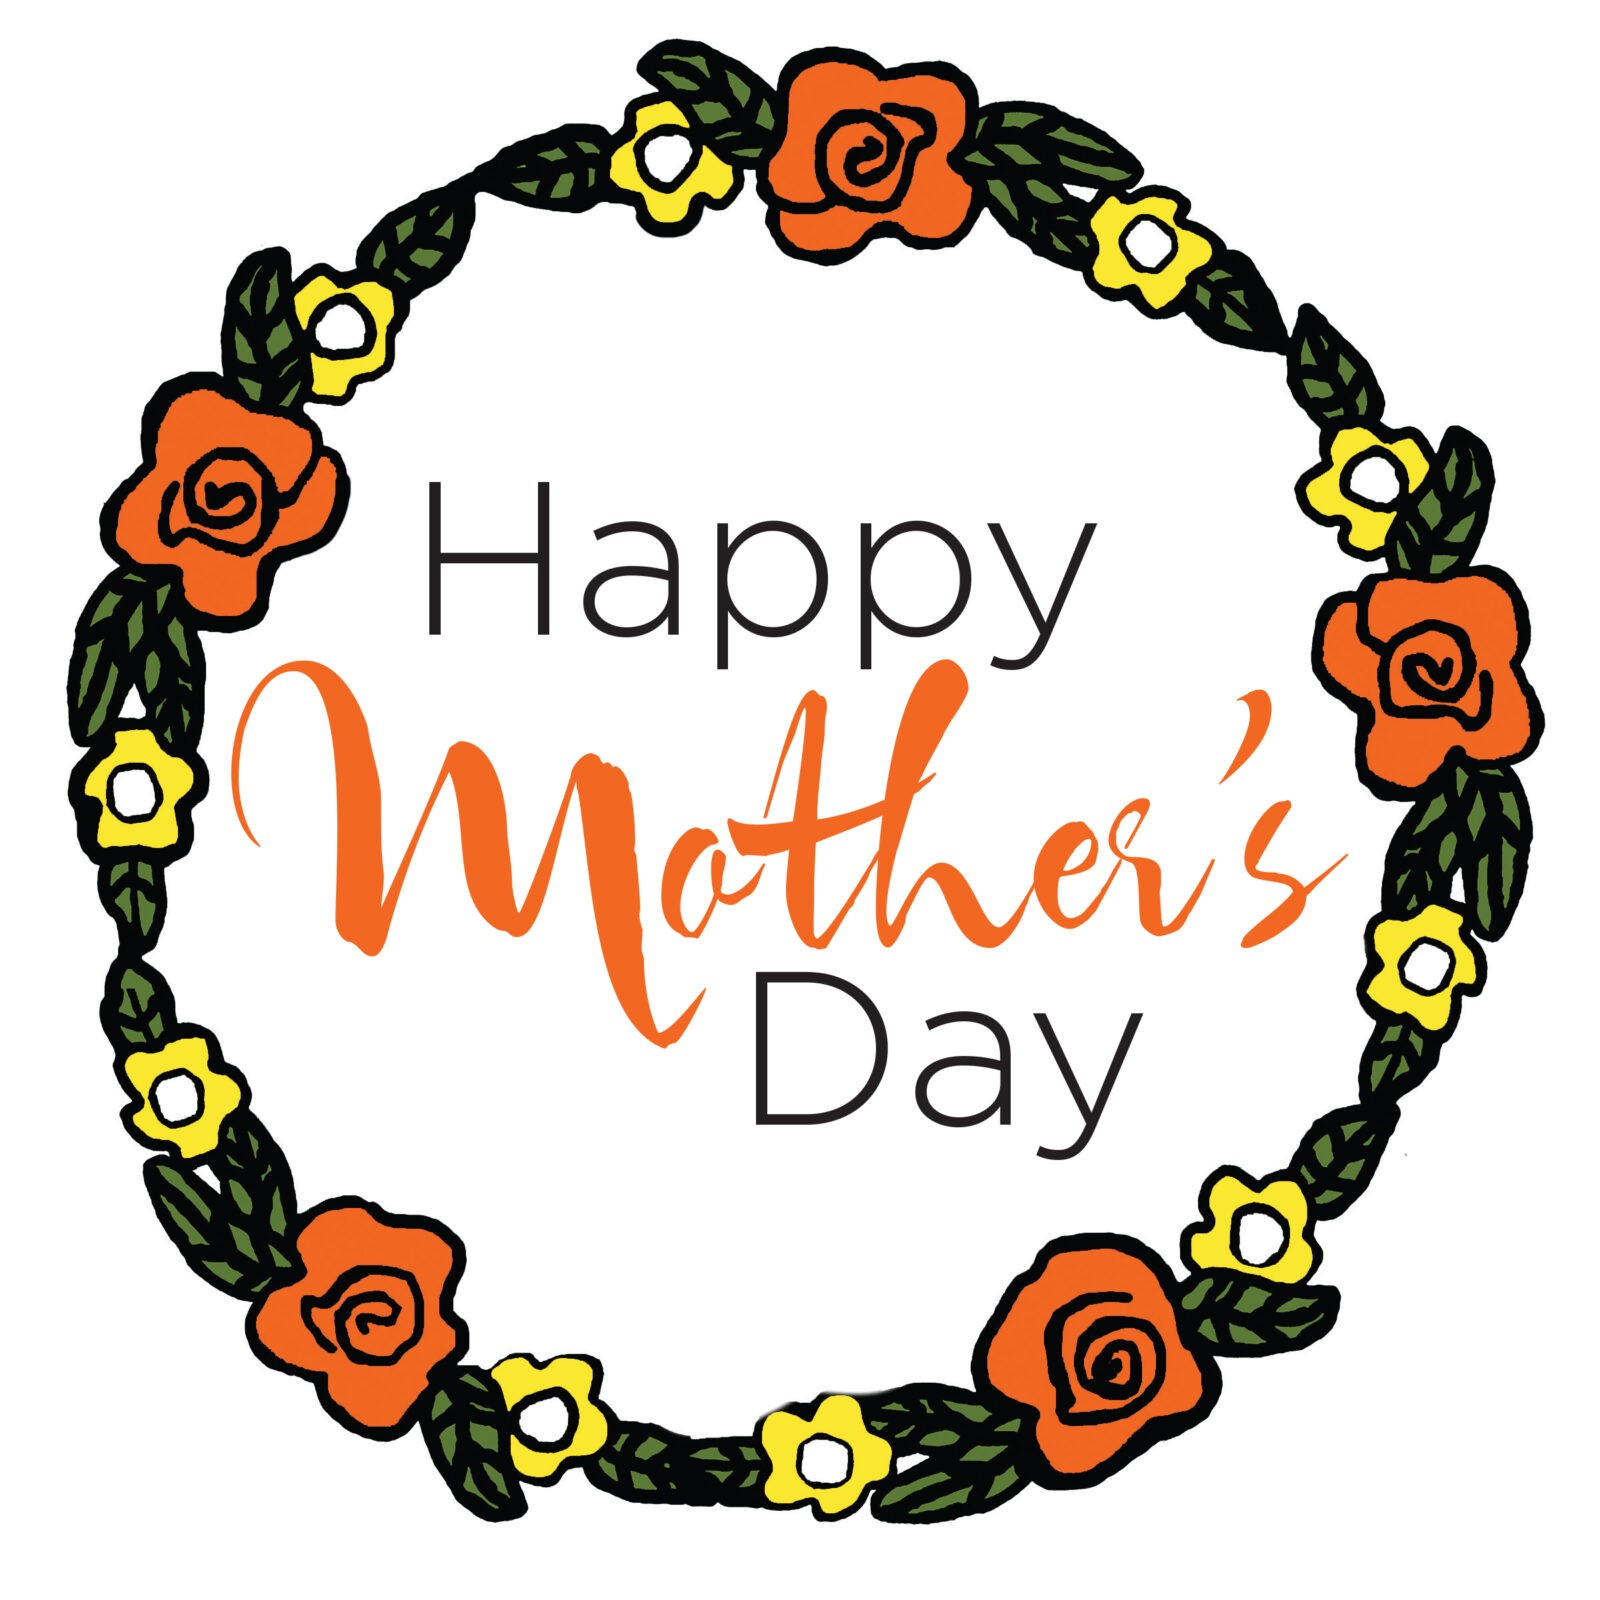 Happy Mother's Day Tile (Orange)